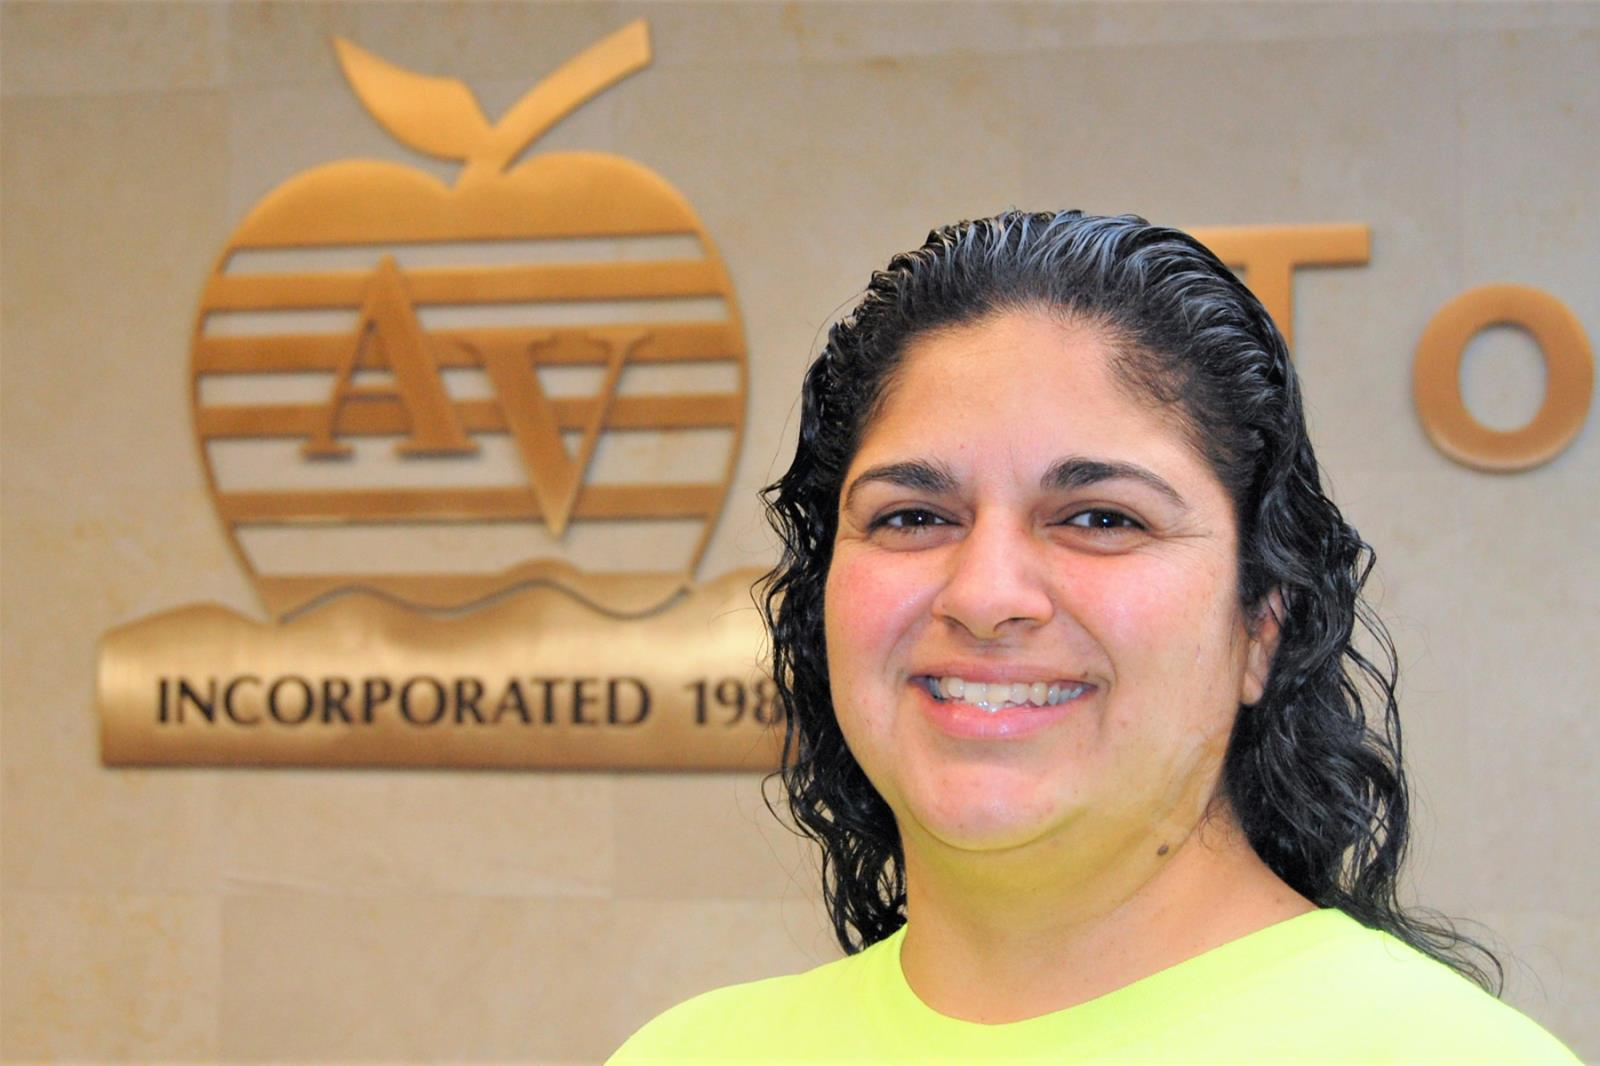 Stephanie Vargas named Apple Valley employee of the quarter